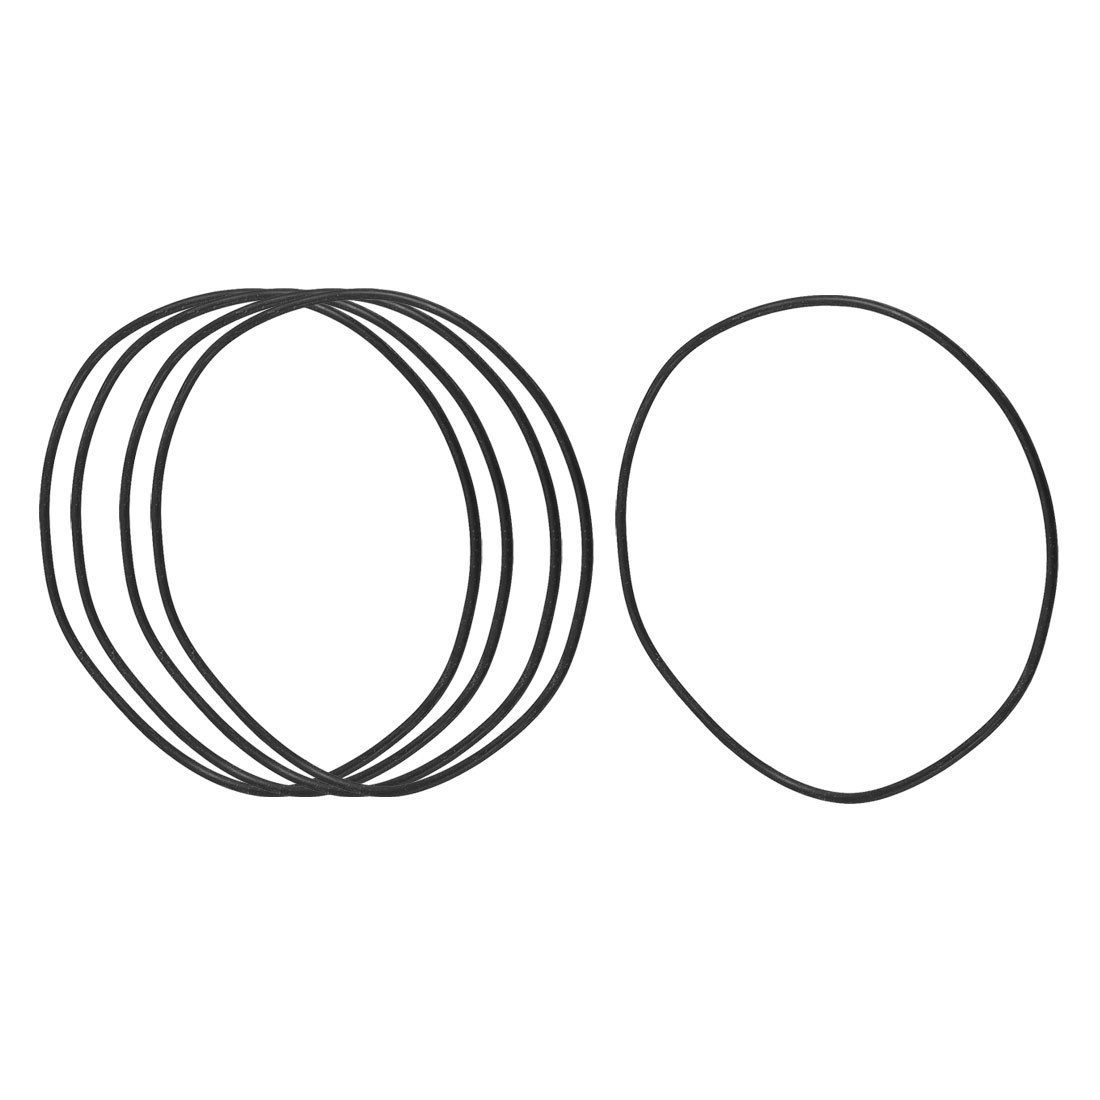 5 Pcs 130mm x 124mm x 3.1mm Mechanical Rubber O Ring Oil Seal Gaskets Black